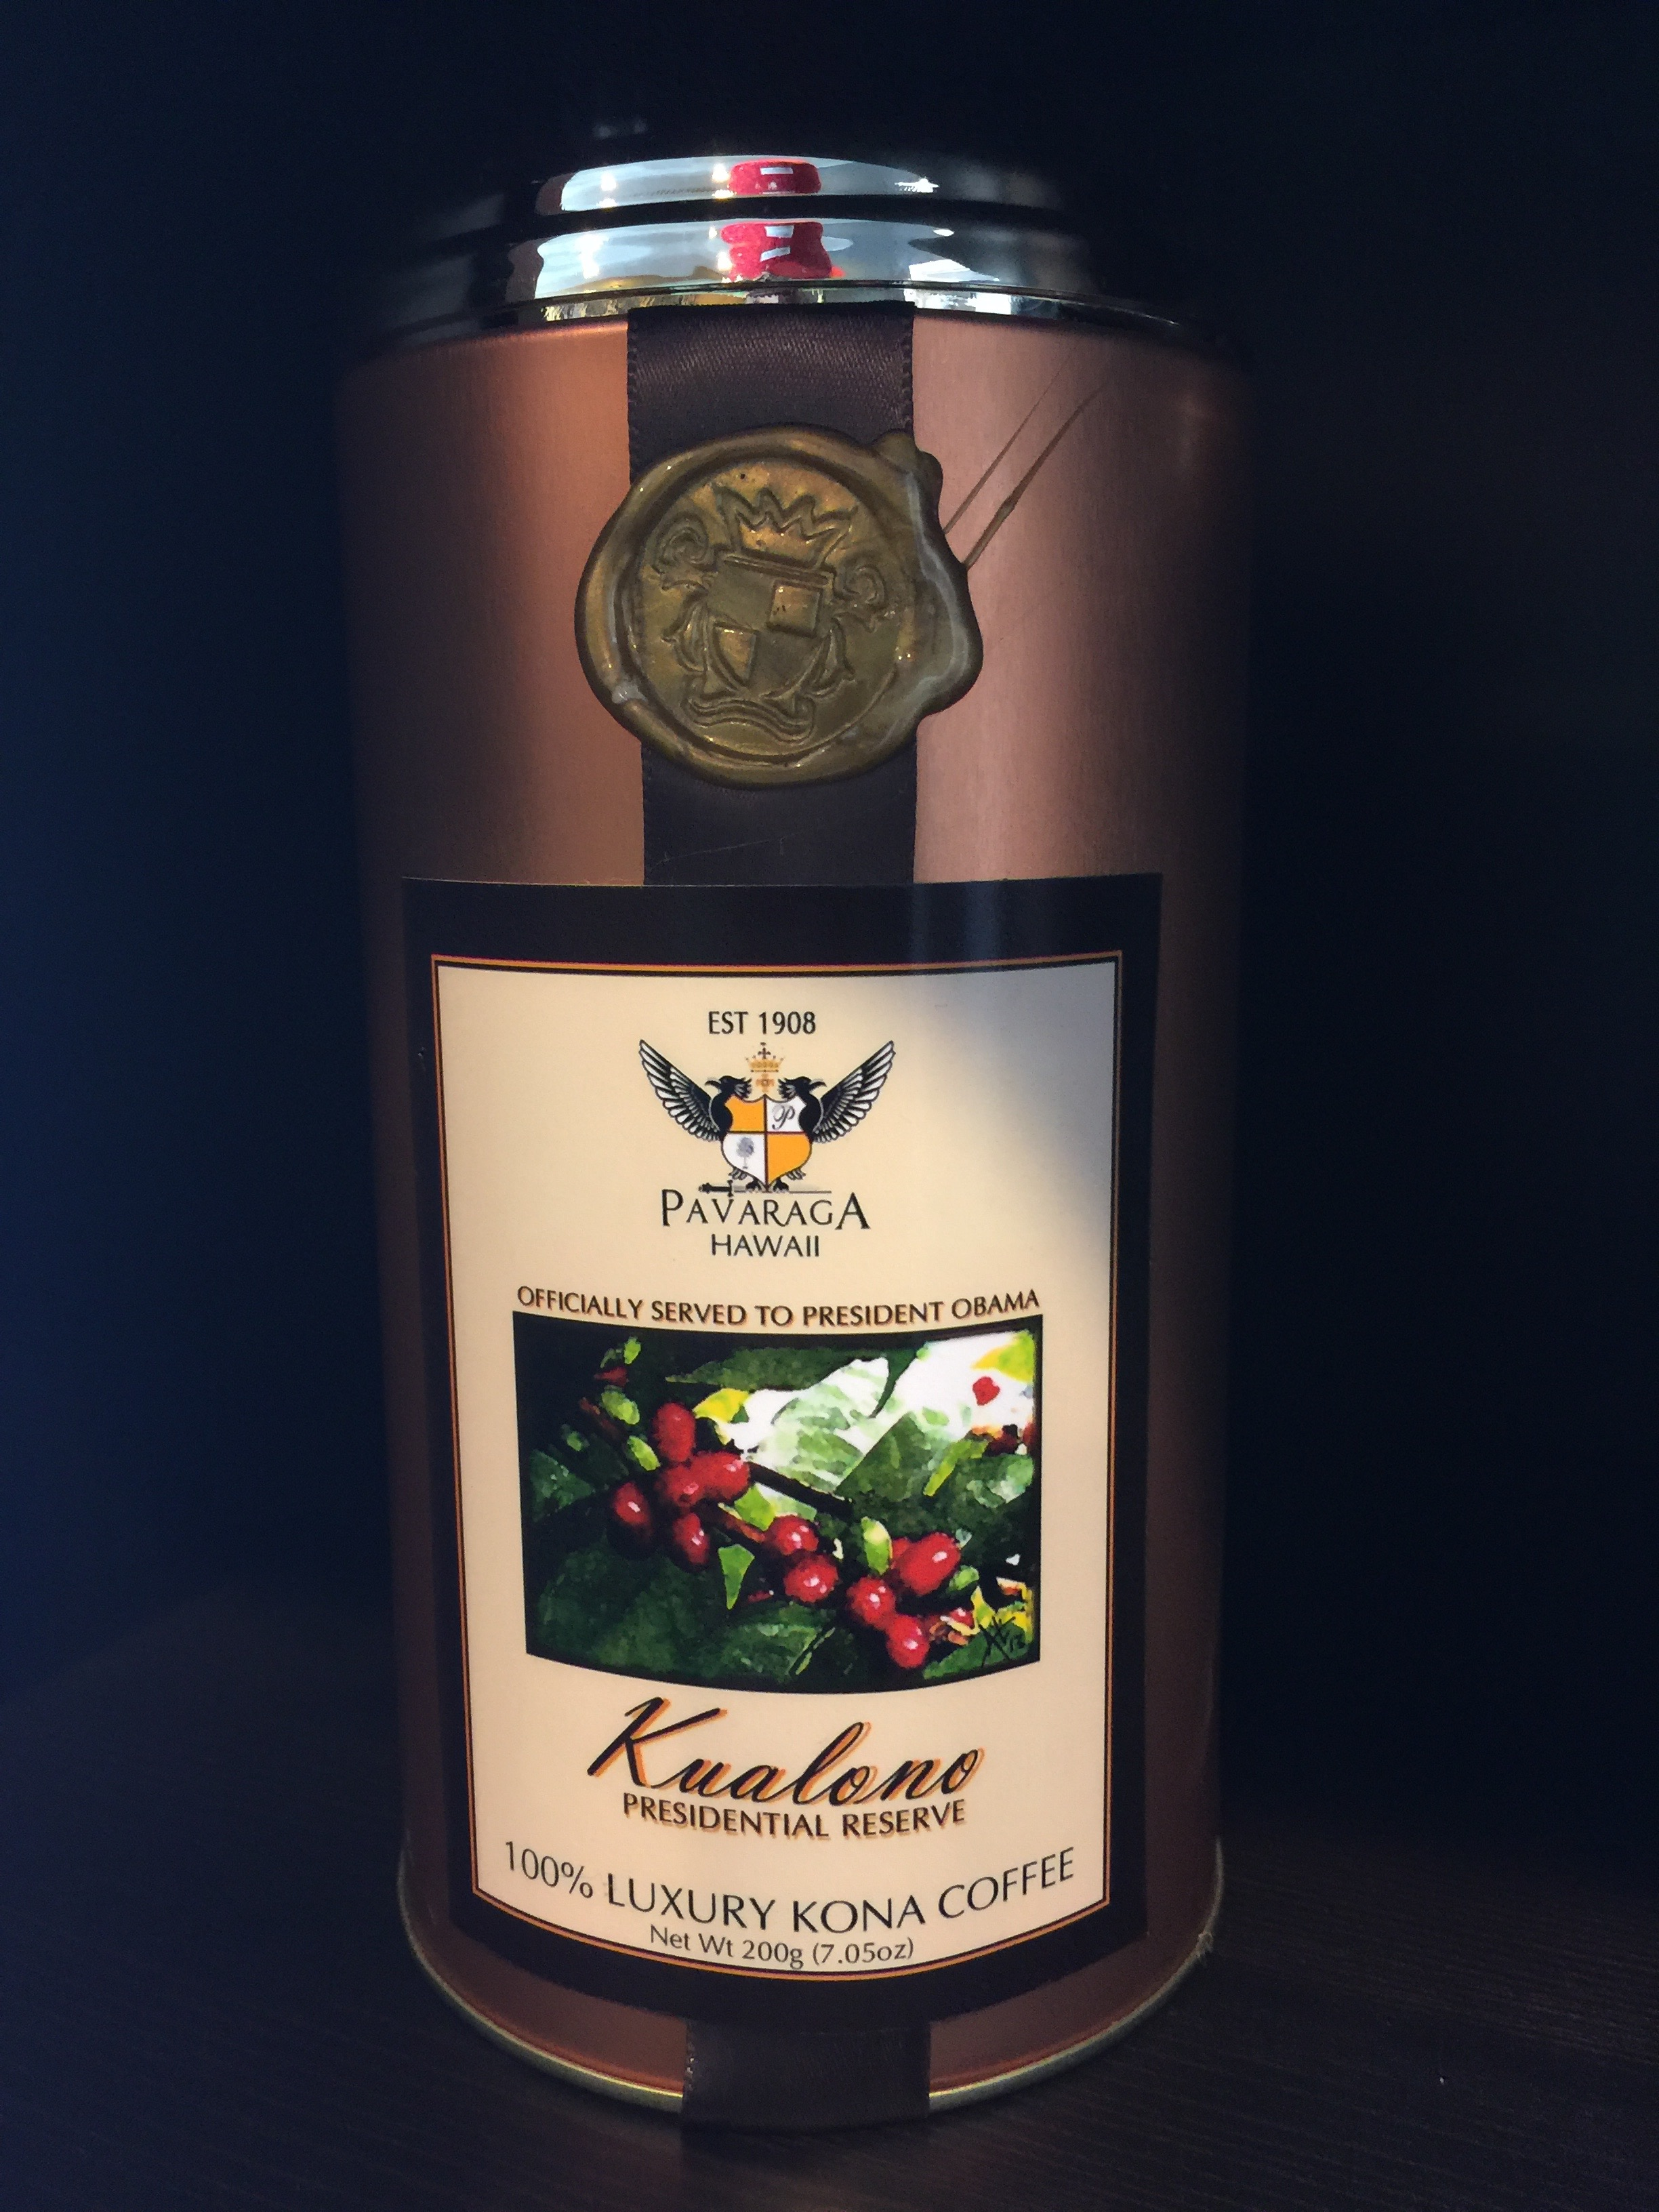 A sample can of the Pavaraga Presidential Reserve Coffee that was served to President Obama.